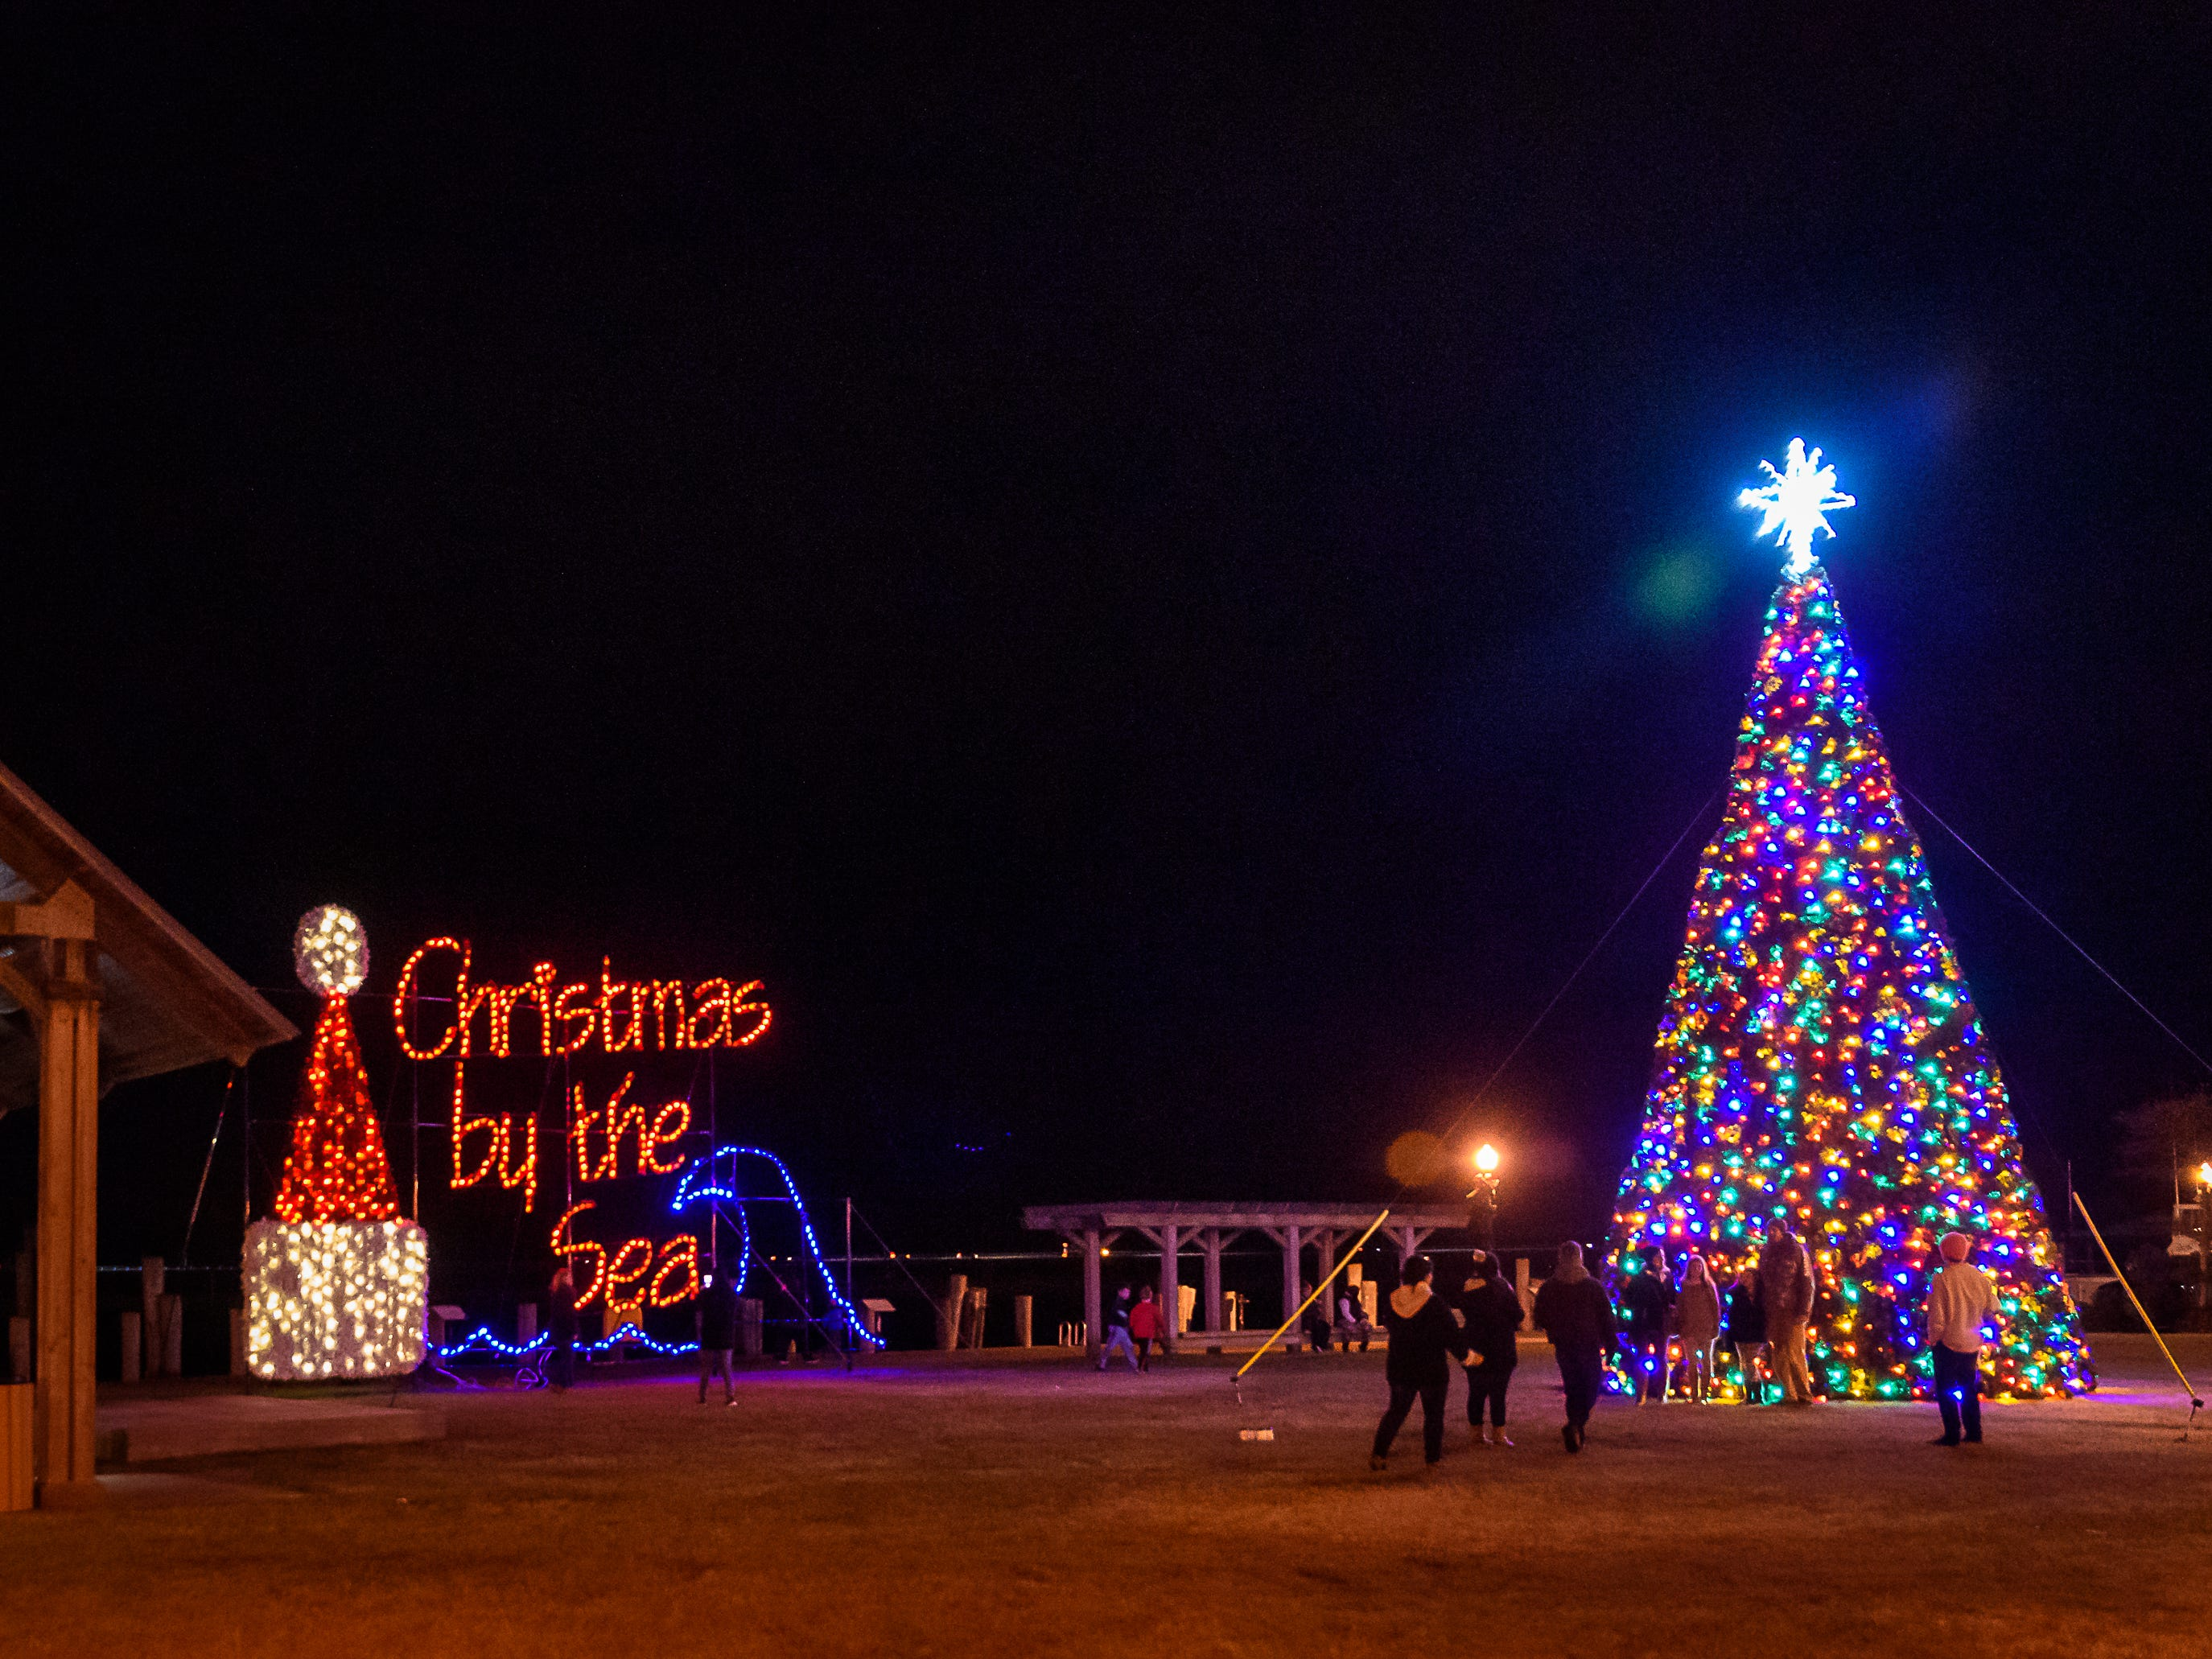 The Chincoteague Christmas tree lights up the downtown Robert Reed Park.